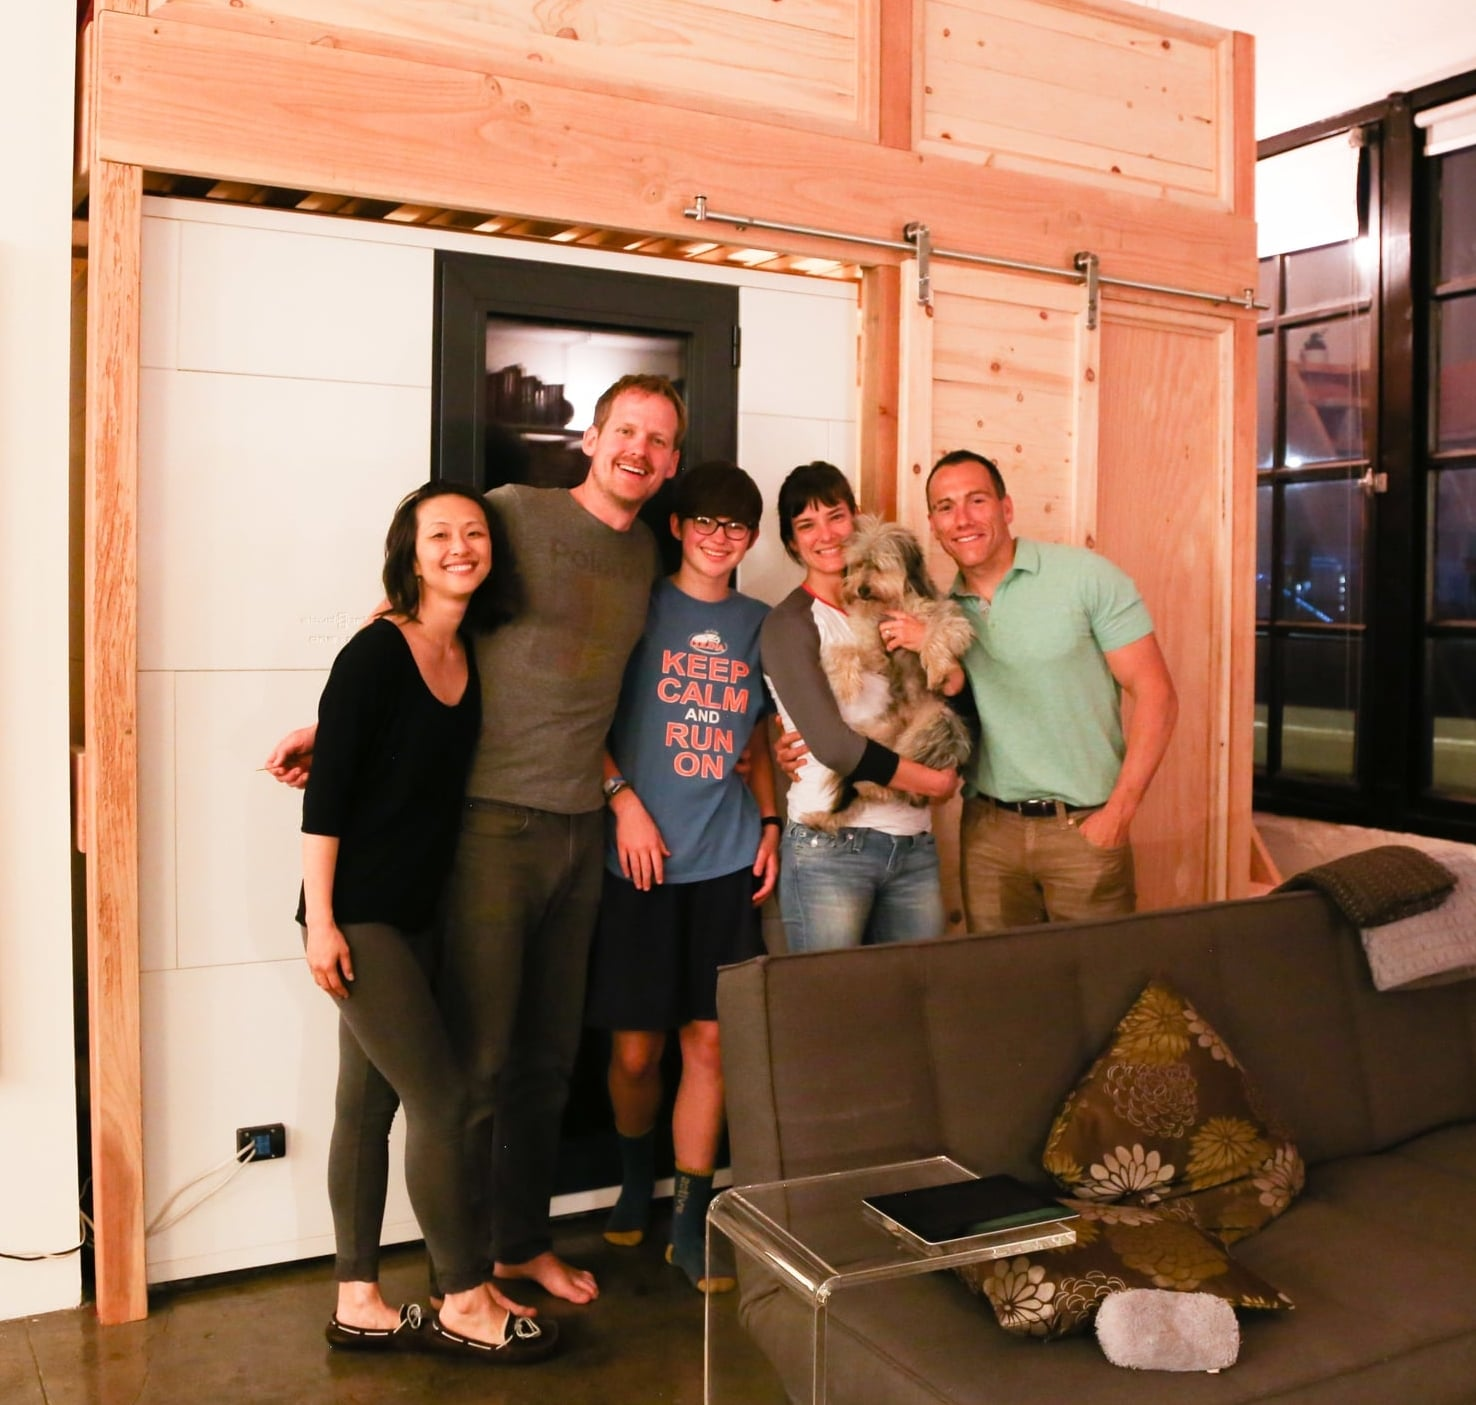 With Corey's sister and her husband after a triumphant sub-loft build. Go vertical!